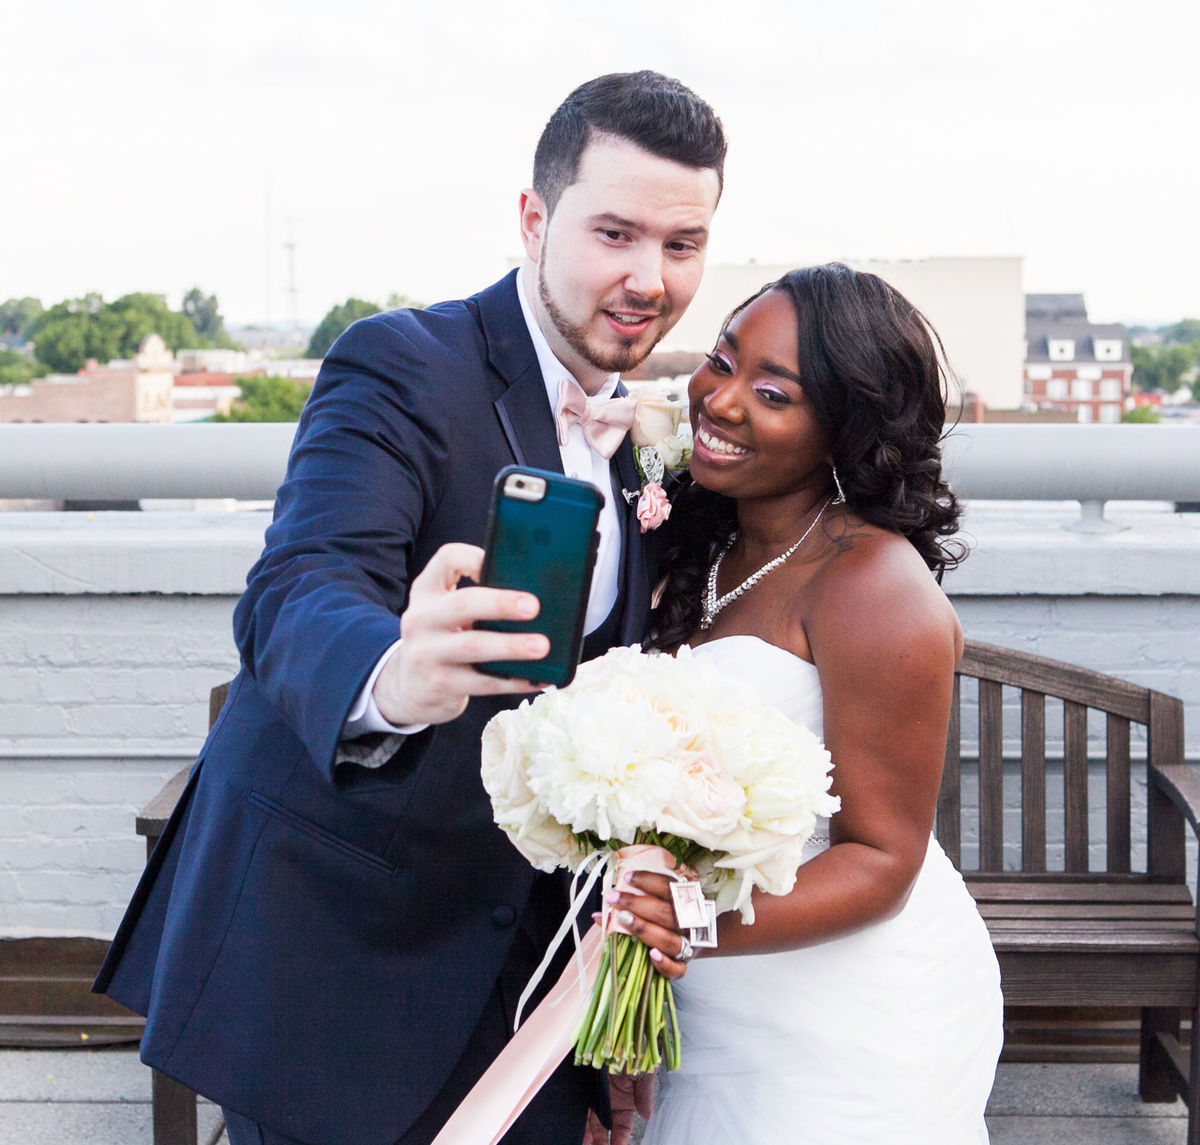 Winston Salem Wedding Planners Reviews for Planners